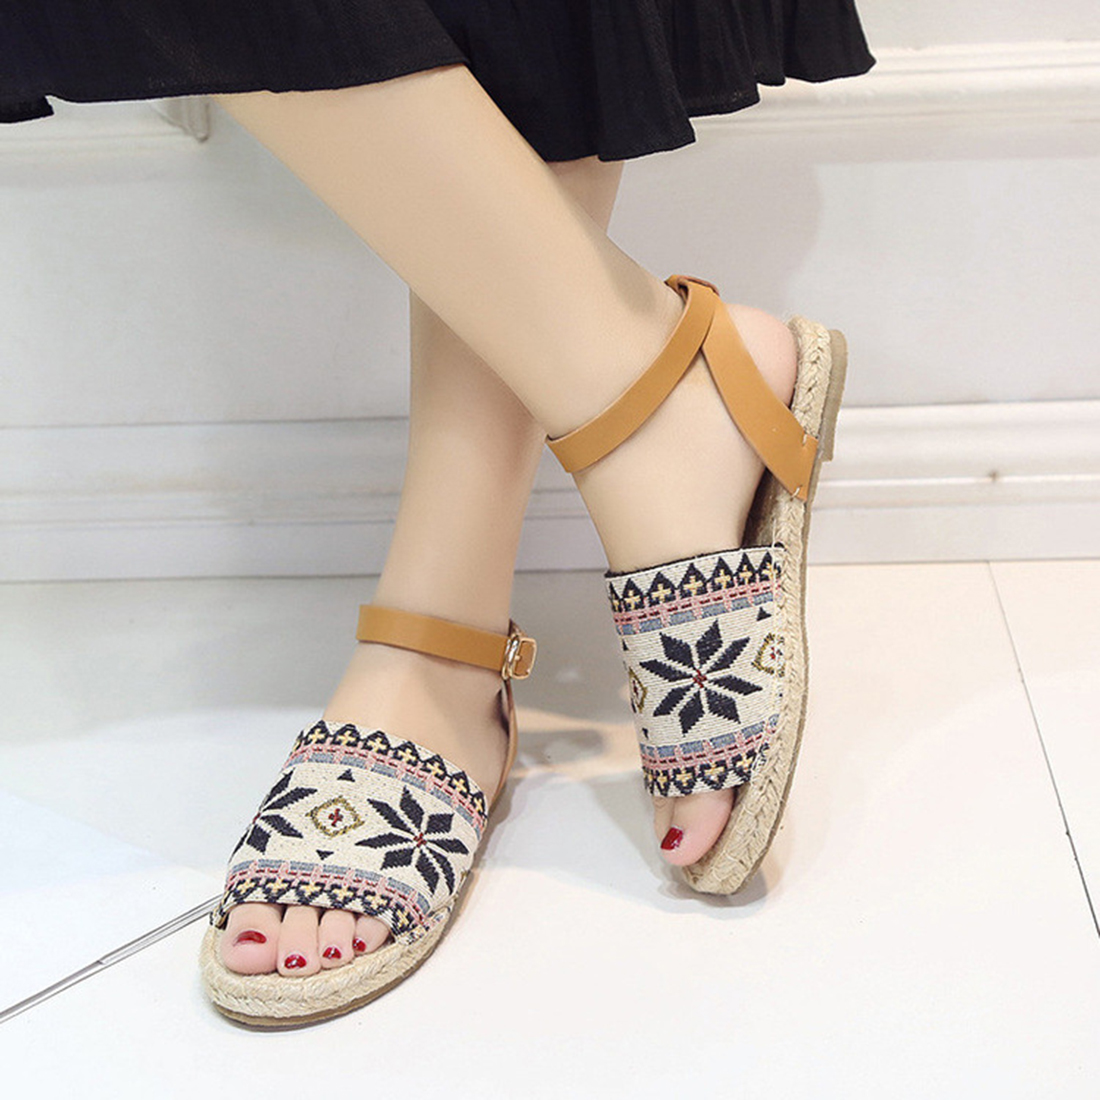 Flat heel sandals images - Brand Shoes Woman New Look Gladiator Sandals Summer Flat Heel Sandals Boots Women Shoes Gift Socks In Women S Sandals From Shoes On Aliexpress Com Alibaba